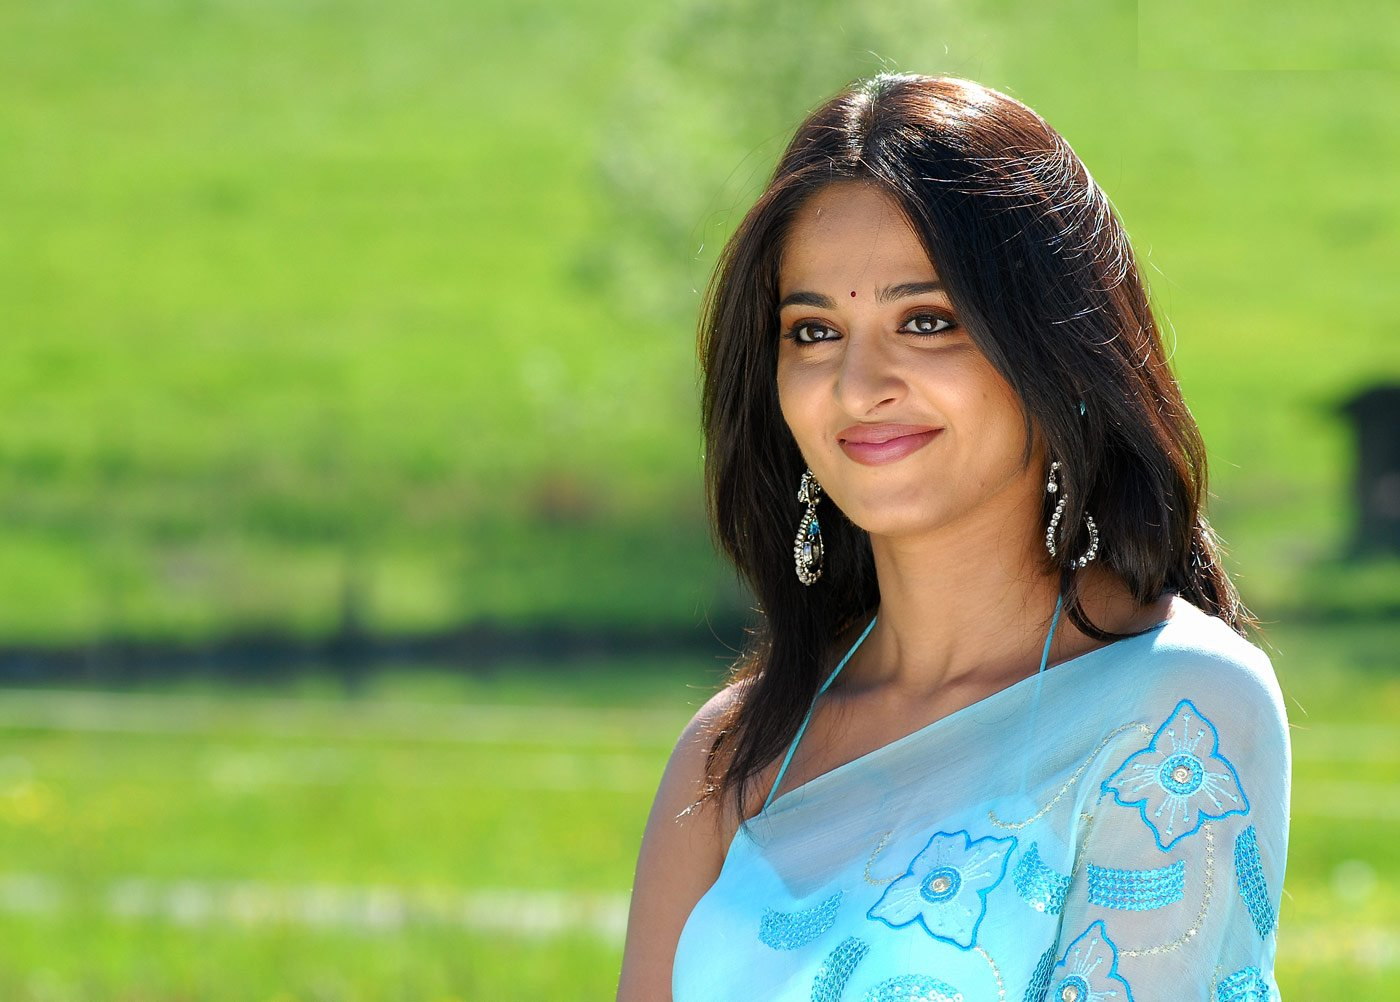 anushka shetty smiling hd images